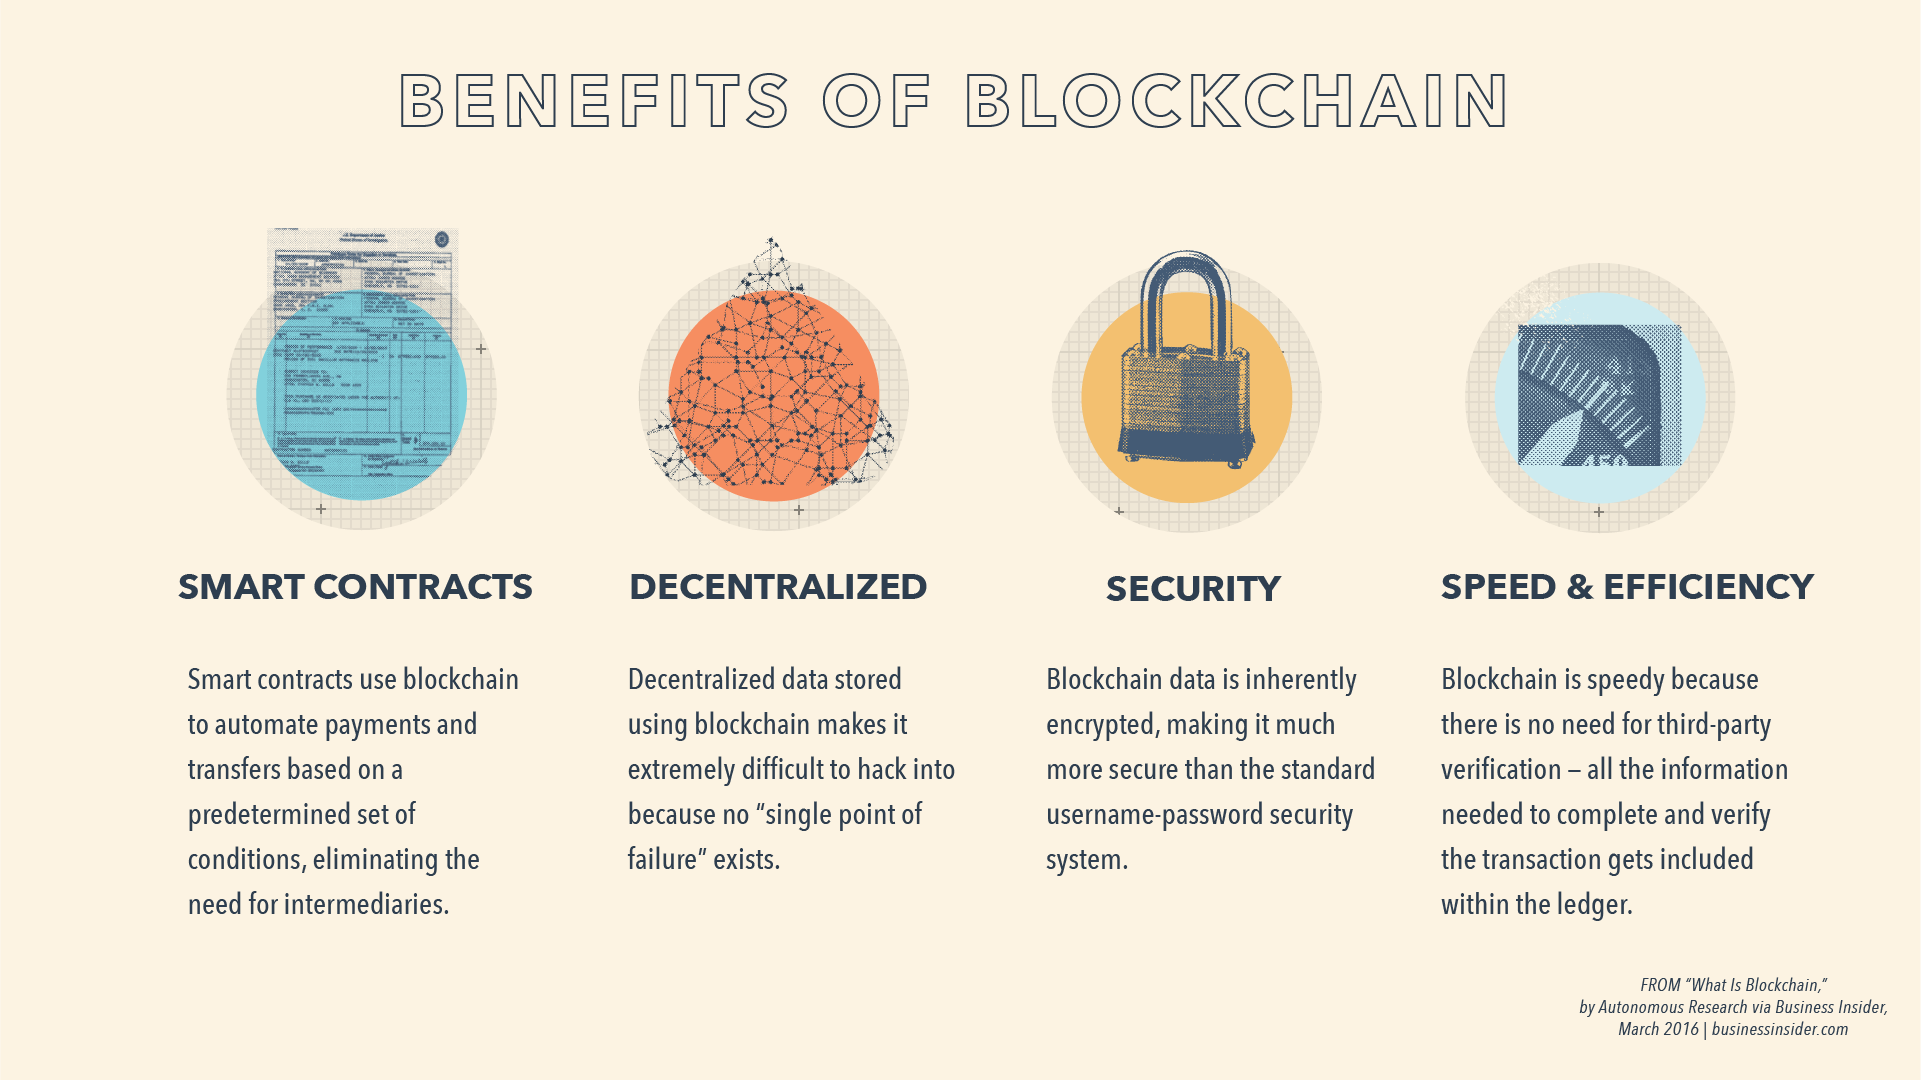 Benefits of Blockchain